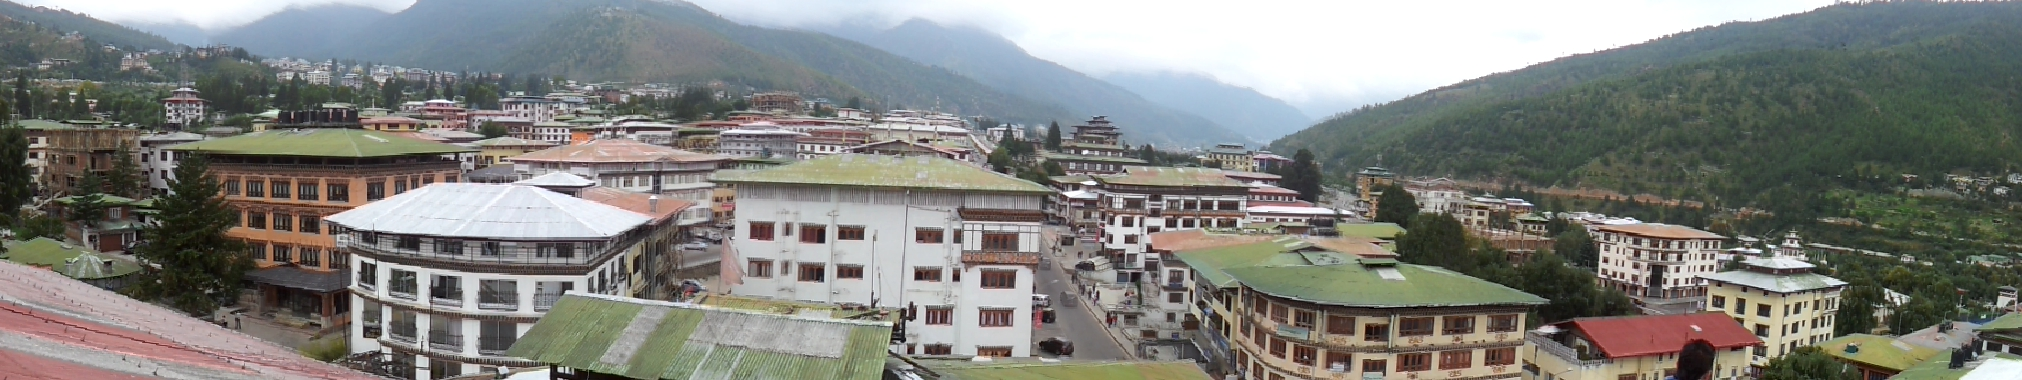 Northern street view of Thimphu